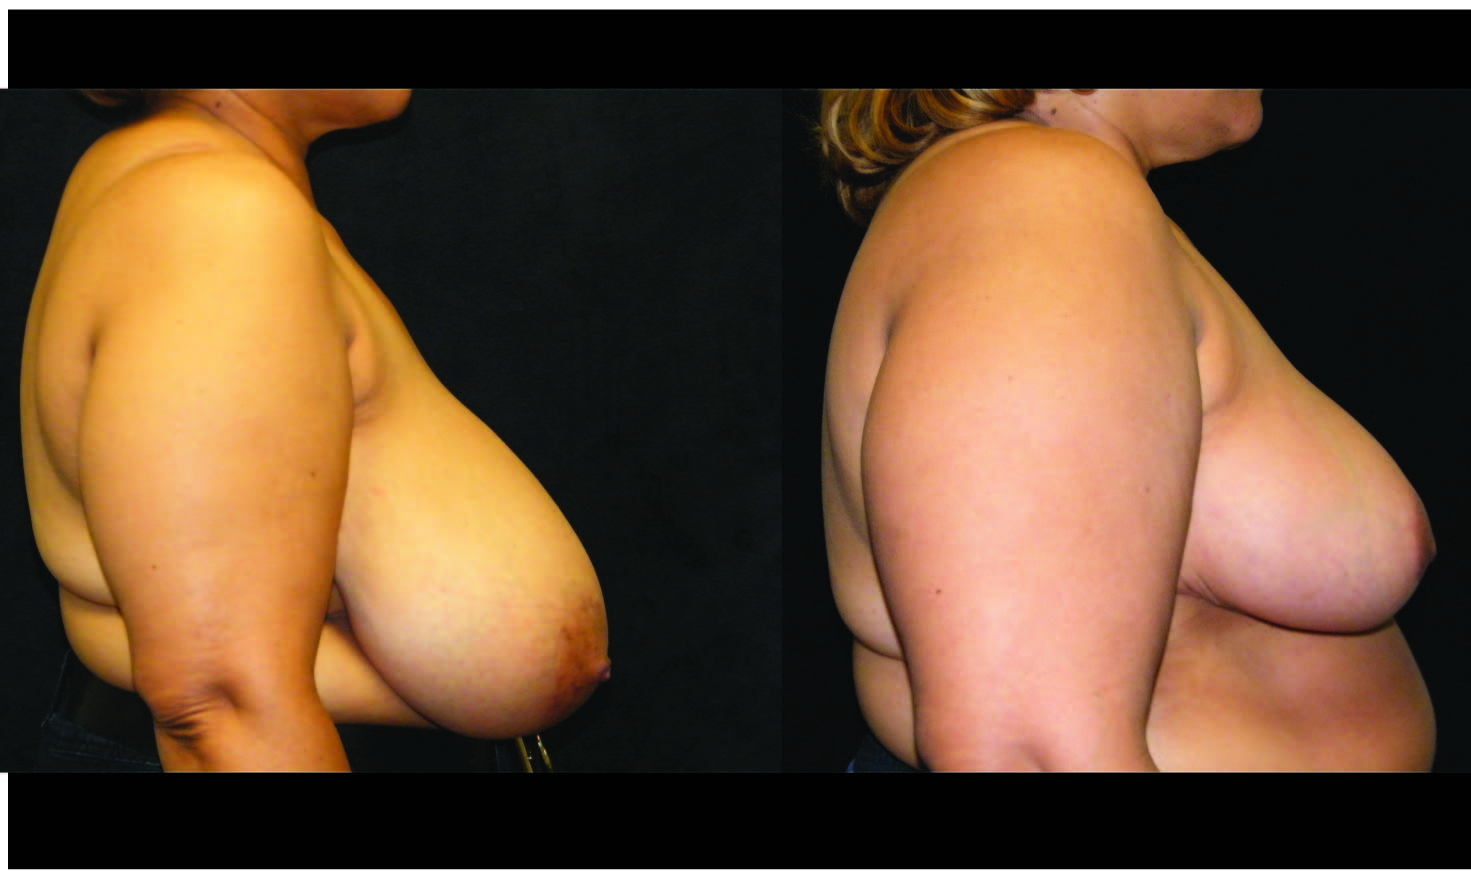 Breast Reduction Patient 2 Before & After